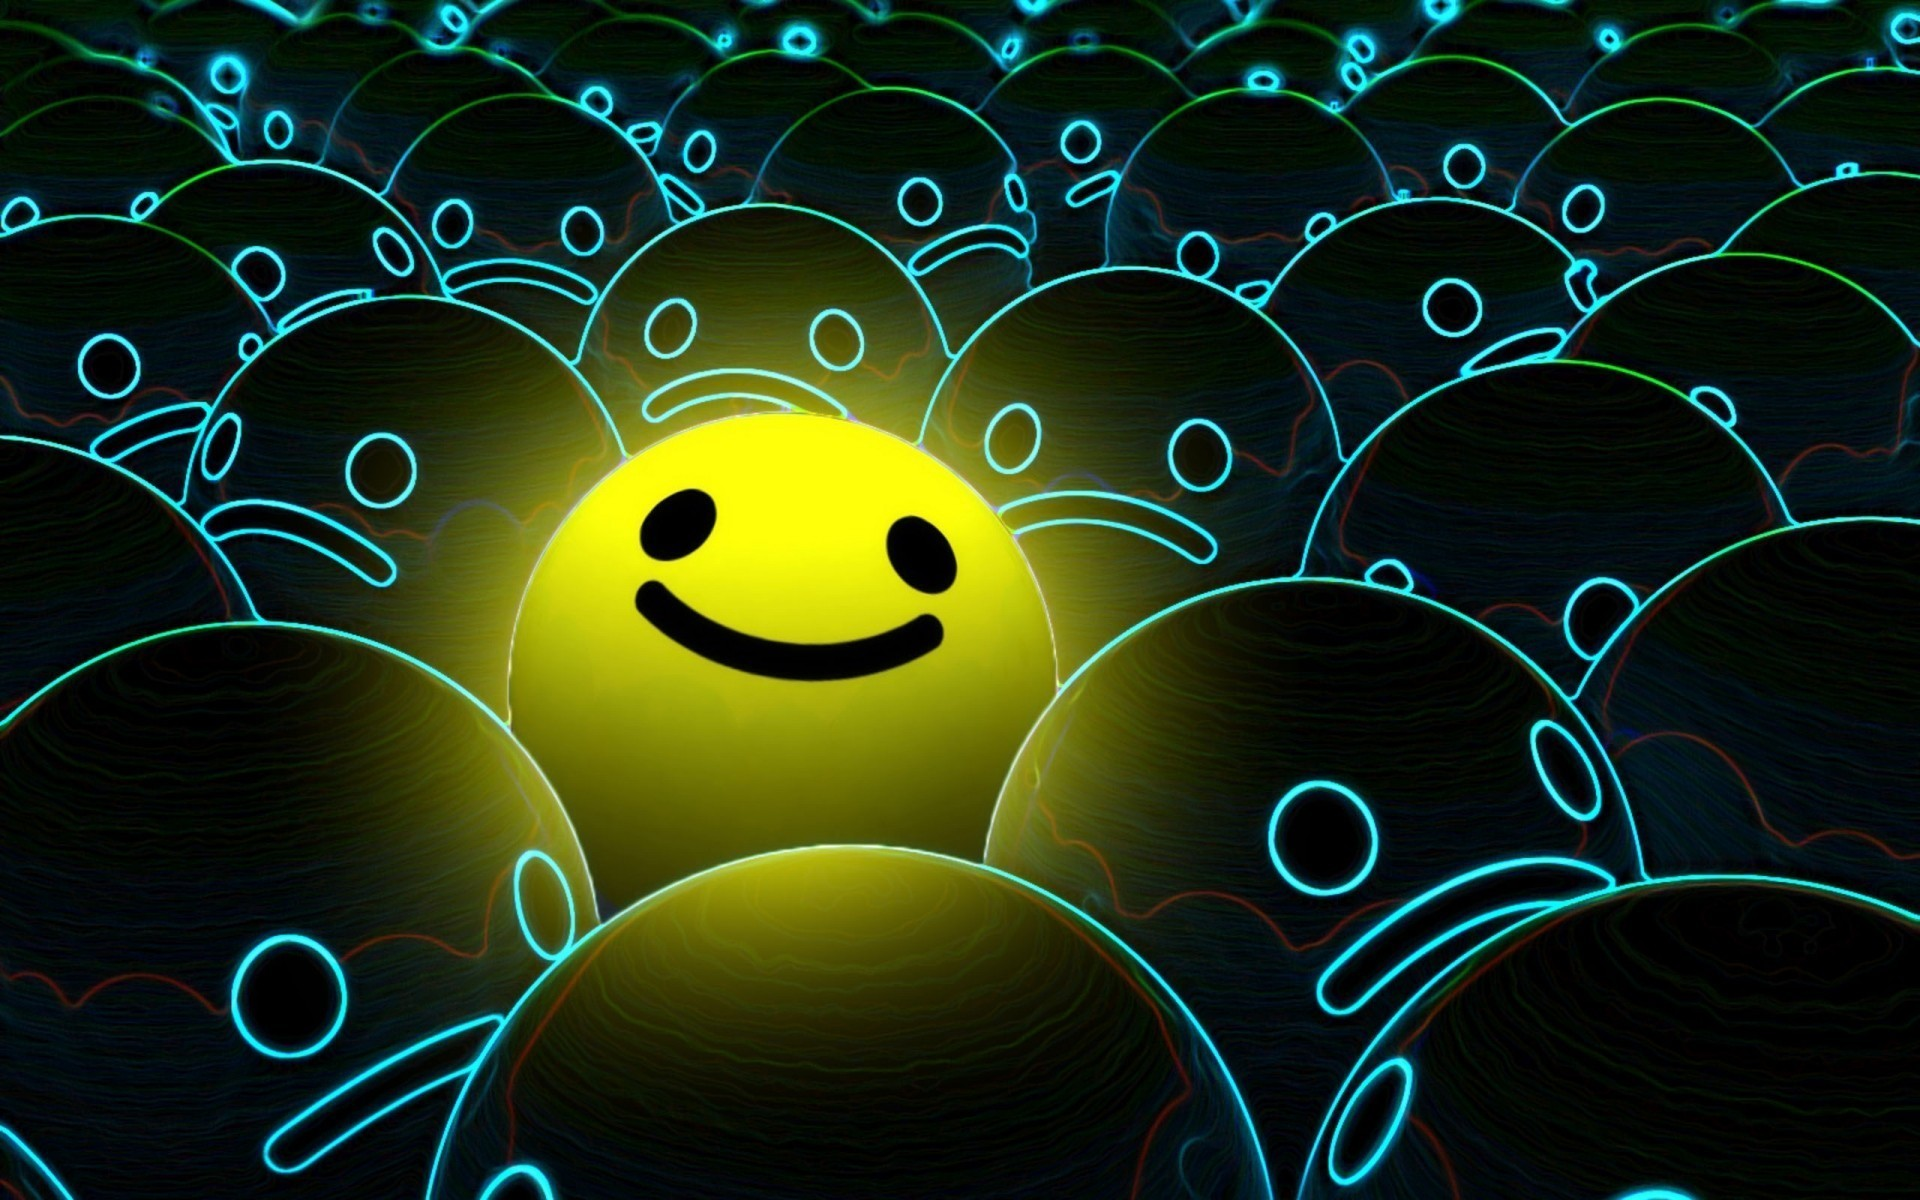 1920x1200 smiley face desktop wallpaper 49025 50675 hd wallpapersjpg